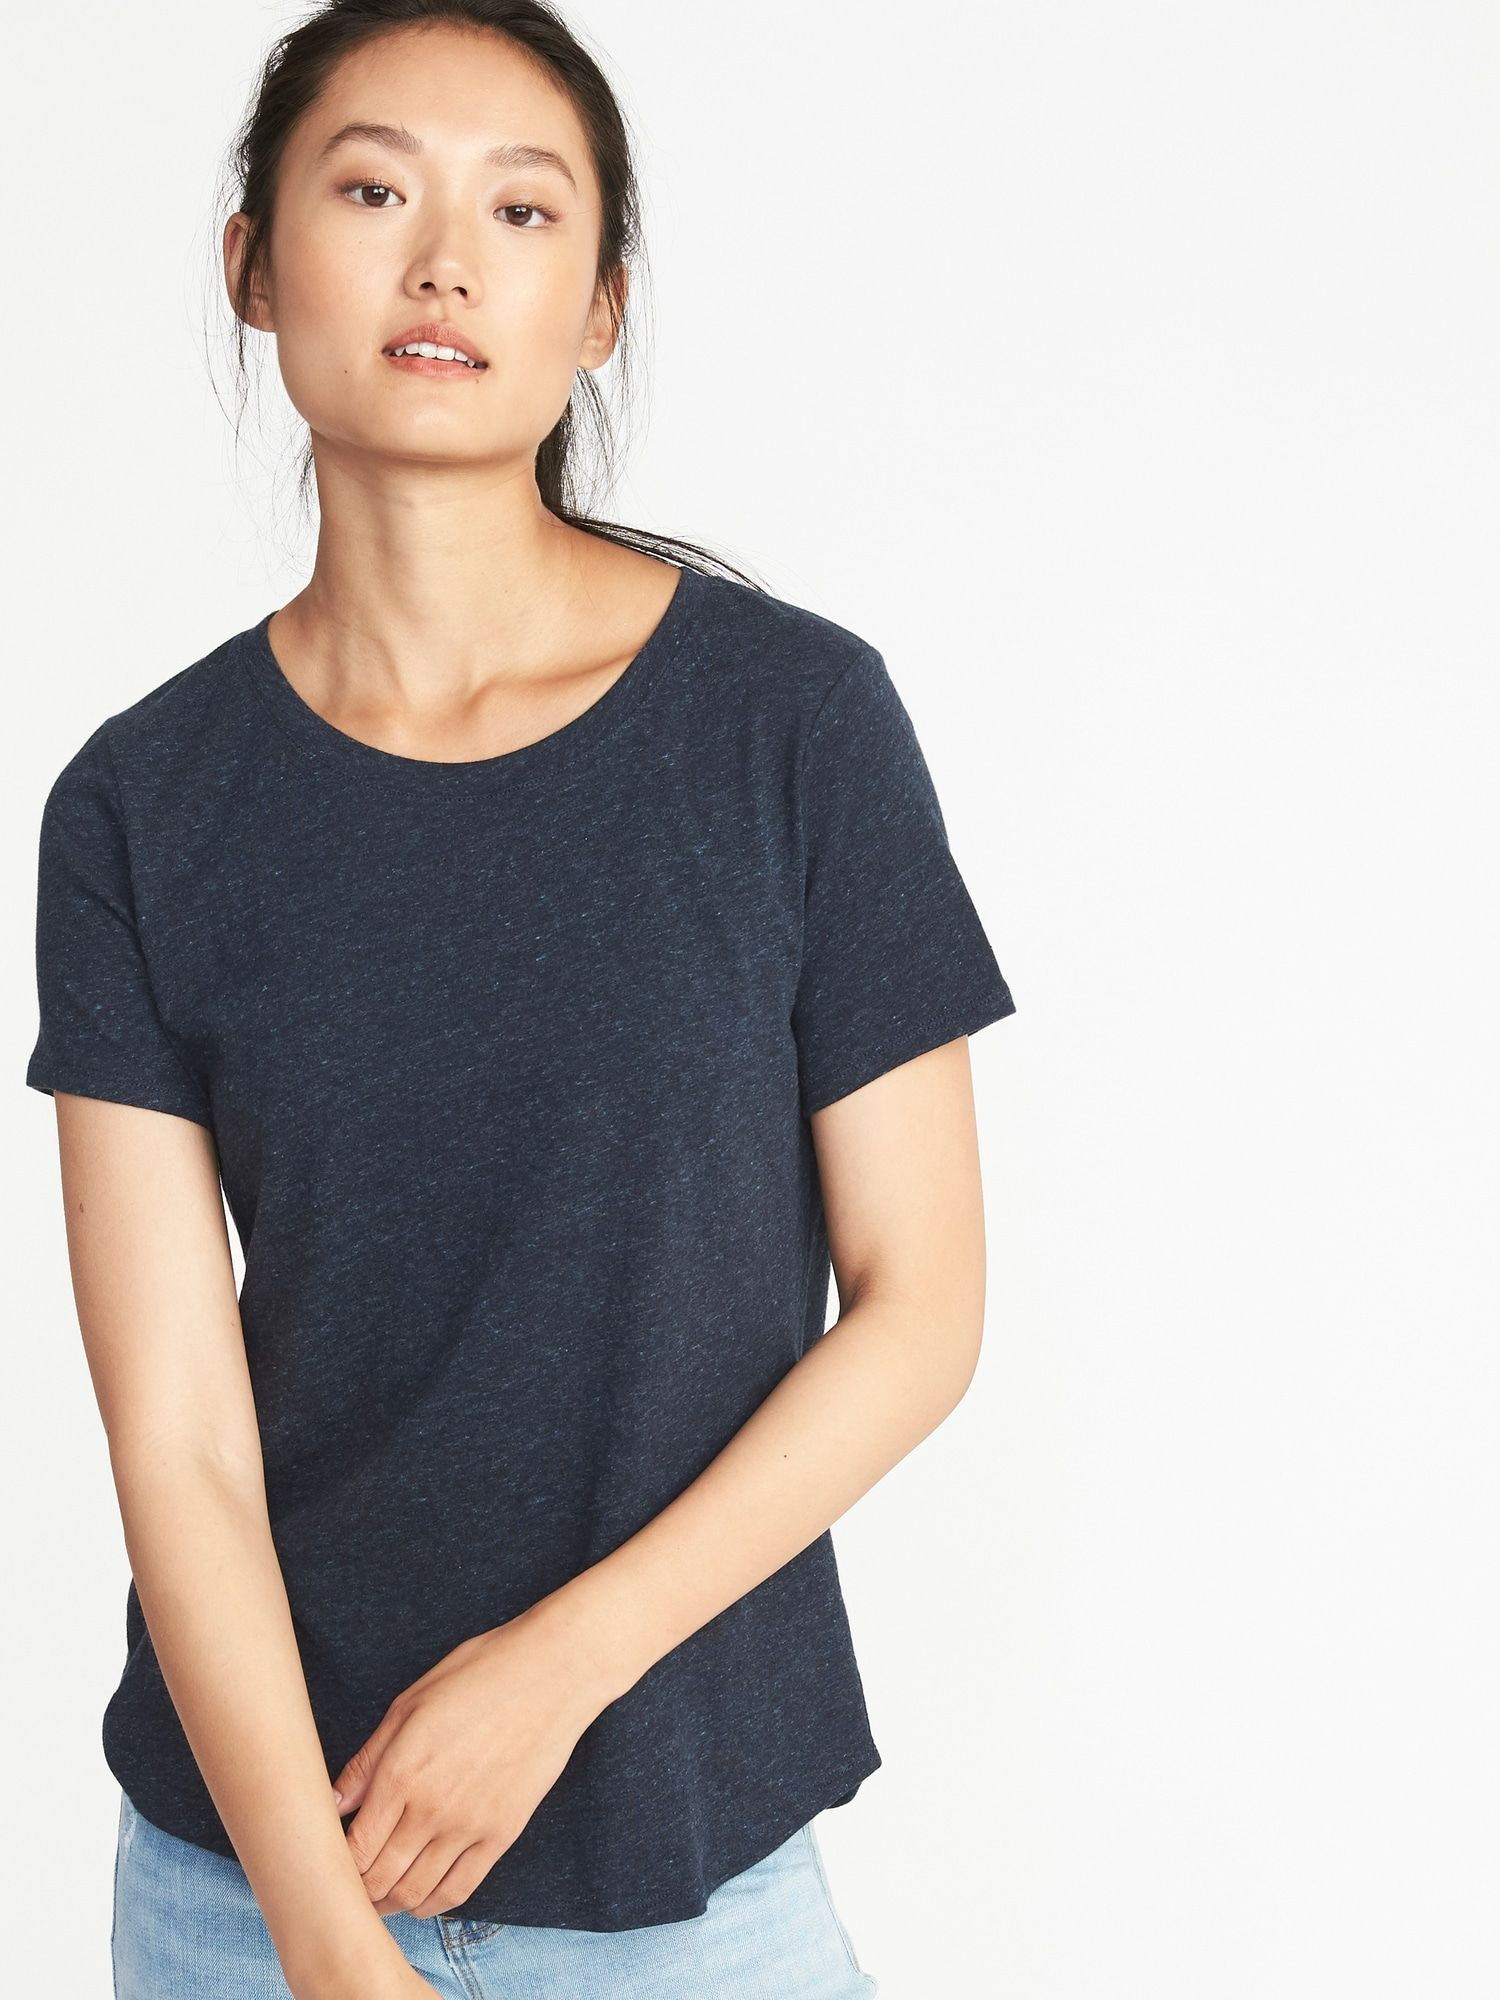 606601cd2 EveryWear Crew-Neck Tee for Women | clothes | Navy tees, Tees for ...